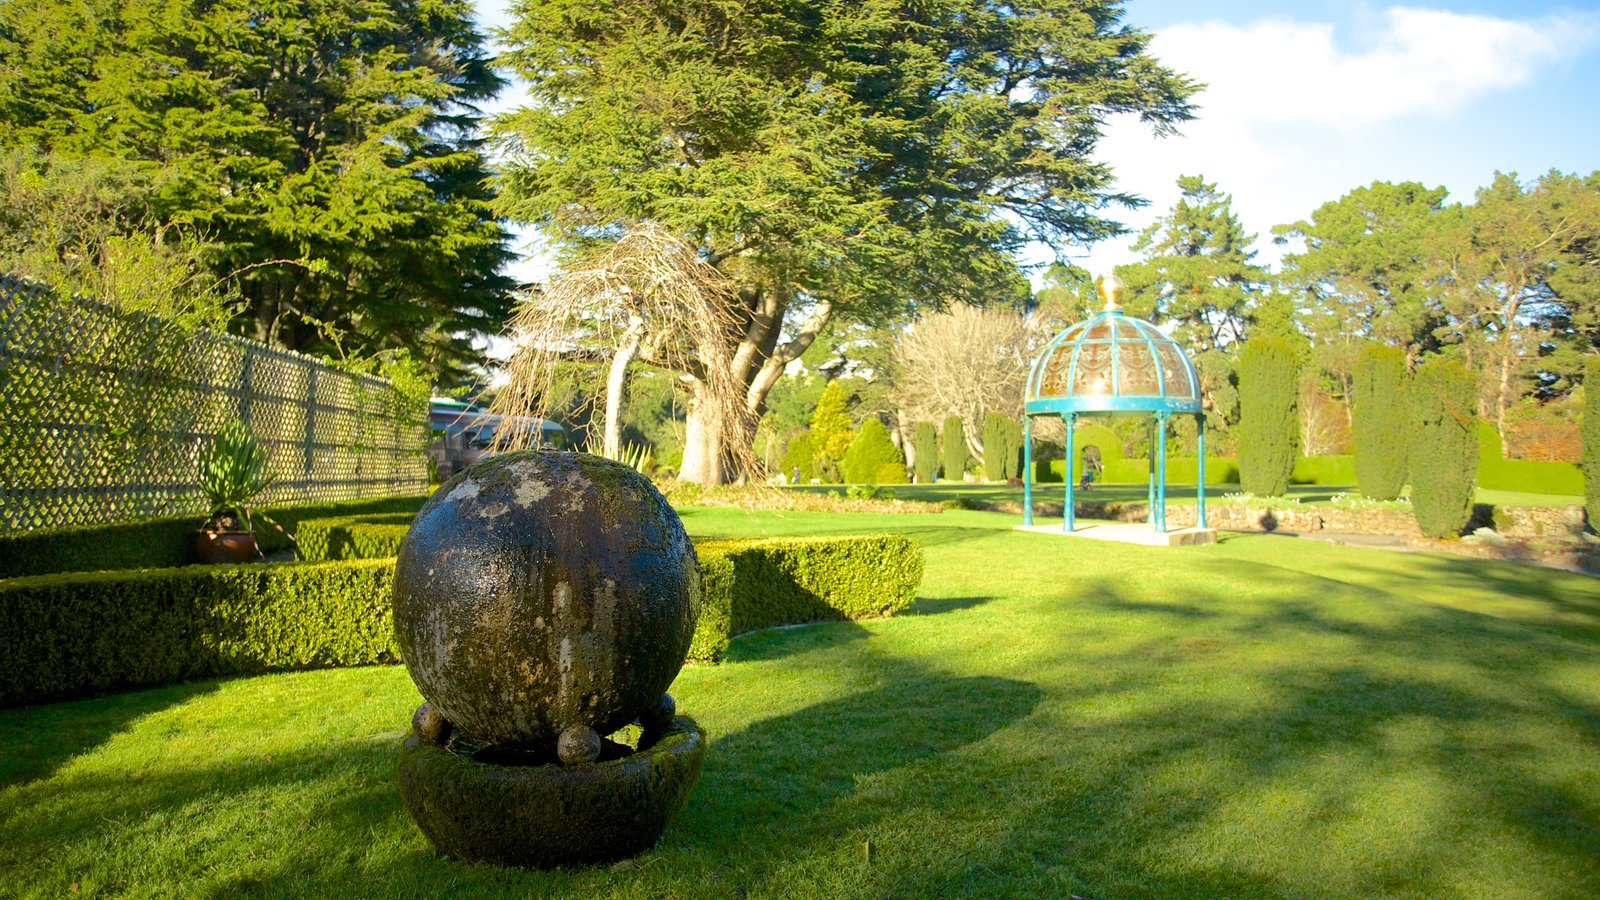 Larnach Castle which includes a garden and outdoor art